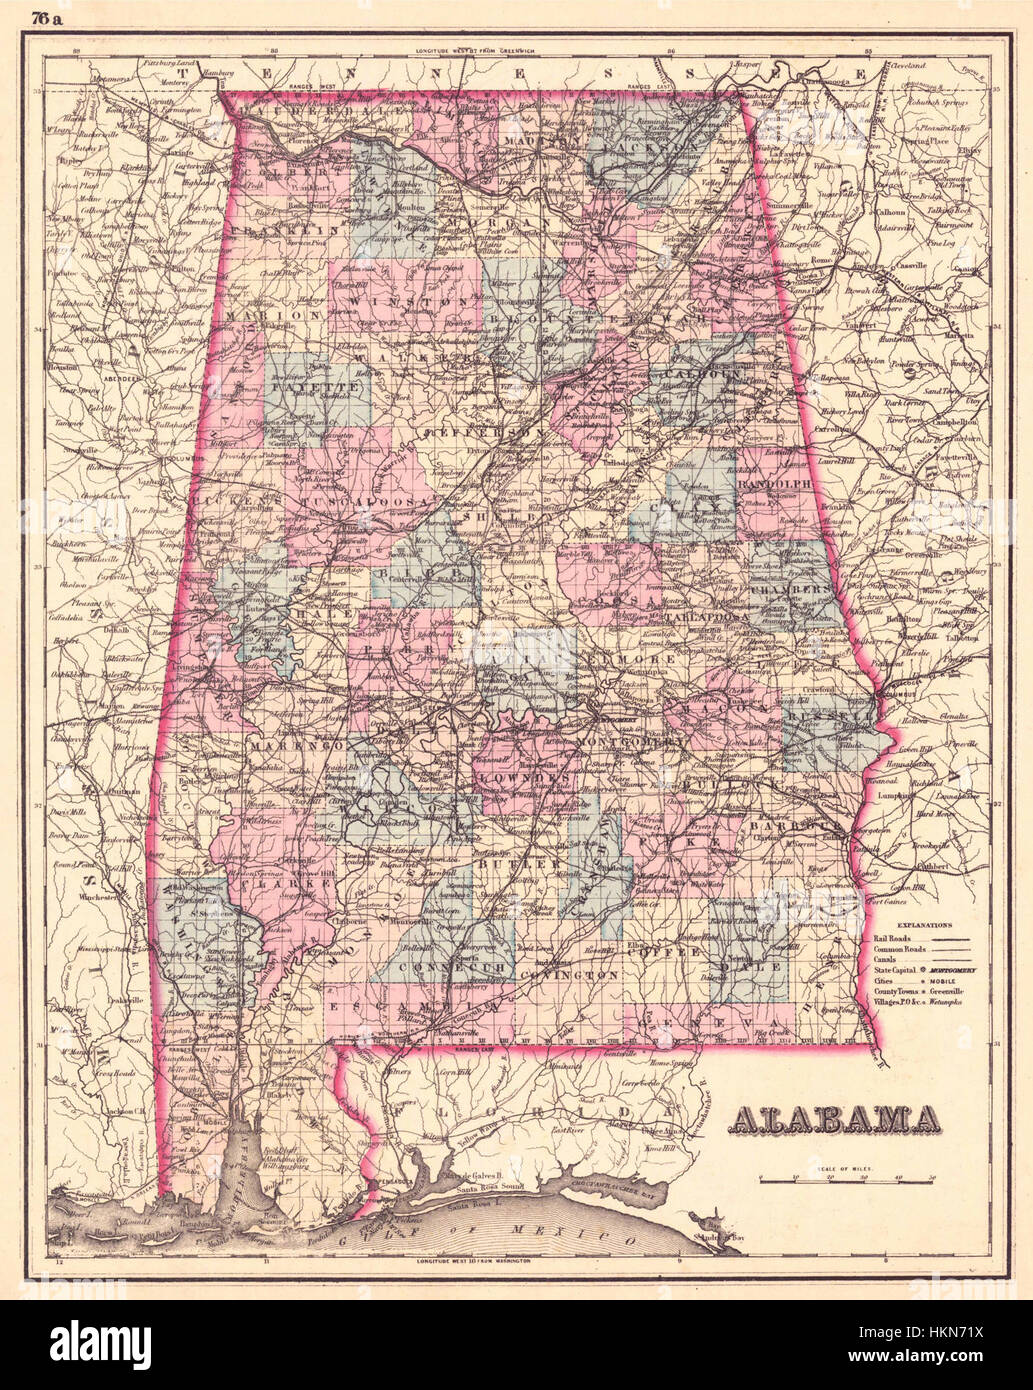 Old Map Of Alabama Stock Photos & Old Map Of Alabama Stock ... Old Maps Of In Alabama on highway map of alabama, books of alabama, old county road map alabama, cities and towns in alabama, map of mount vernon alabama, map of places to visit in alabama, old railroad maps alabama, map of mississippi and alabama, old maps vermont, mountain ranges map of alabama, old houses in mobile alabama, old maps nebraska, old maps maryland, old california maps, old maps minnesota, physical map of alabama, old federal road jasper alabama, fort stoddert alabama, large map of alabama, the map of alabama,